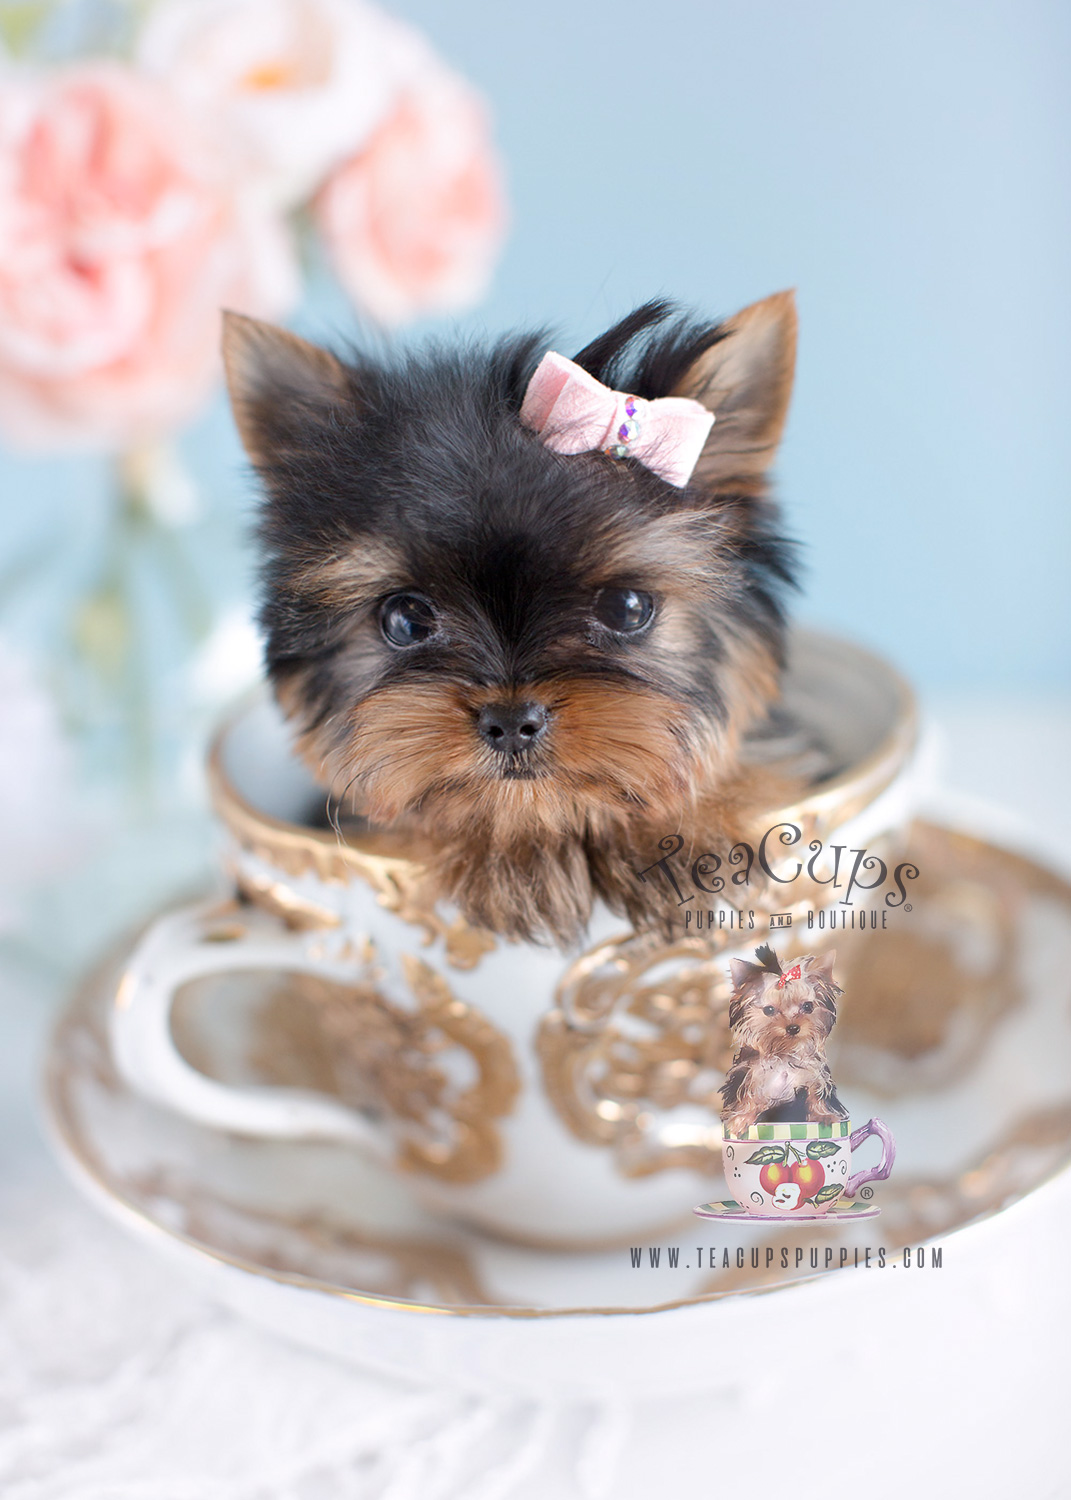 Cute Yorkie Puppies Florida Teacup